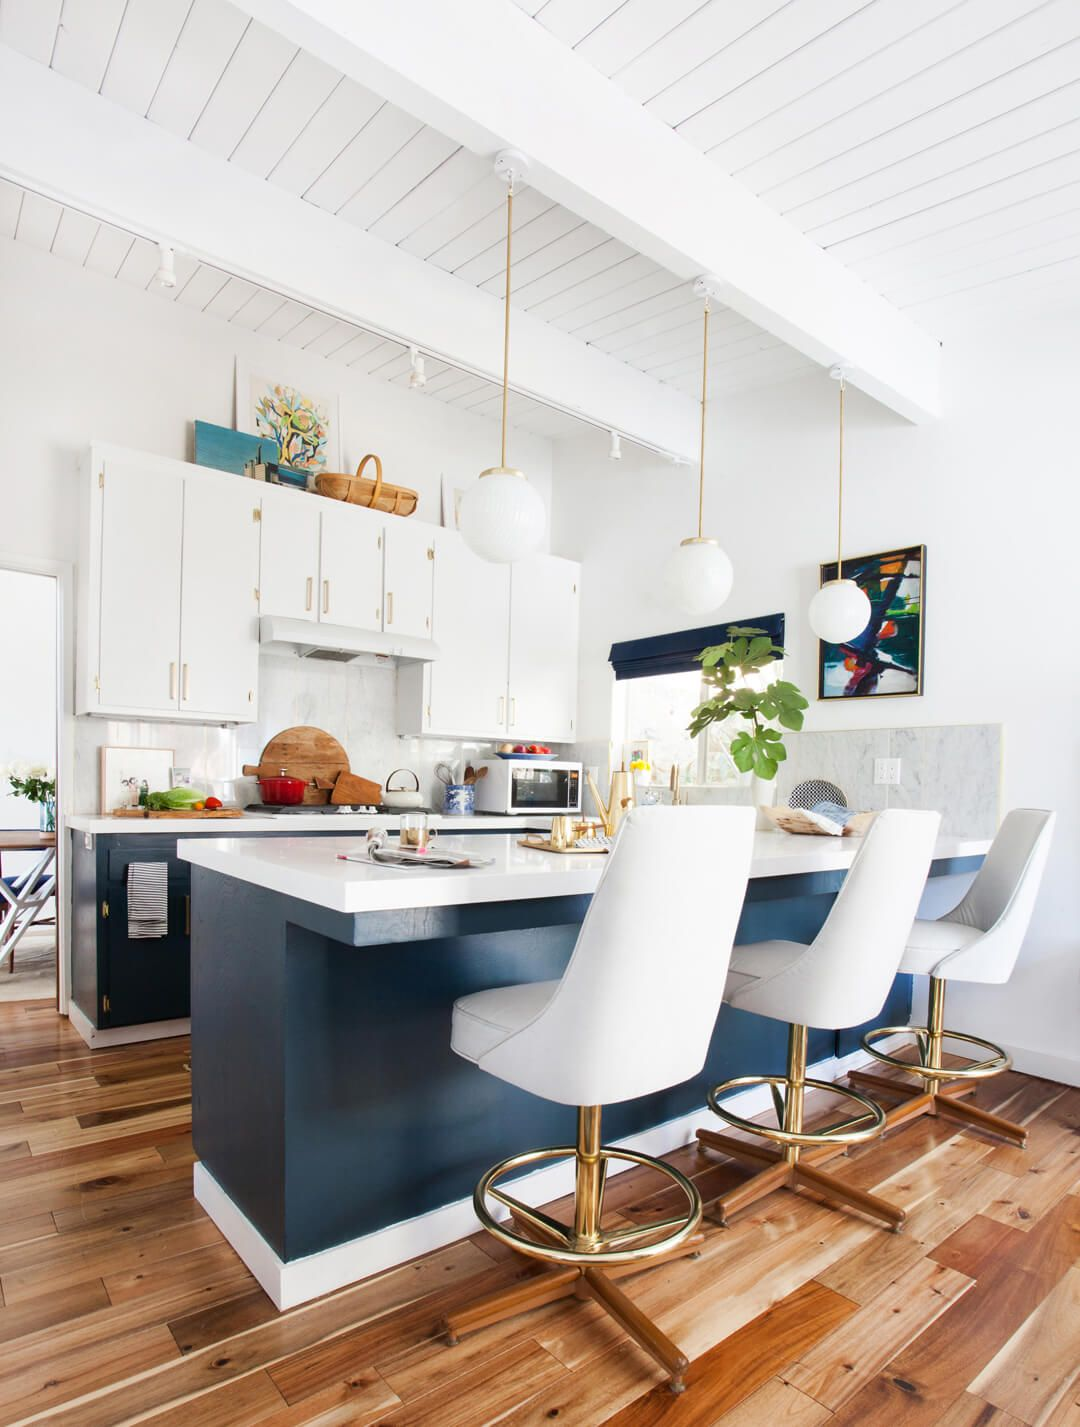 14 Ideas for Decorating Space Above Kitchen Cabinets   How to Design     Courtesy of Tessa Neustadt for Emily Henderson Designs